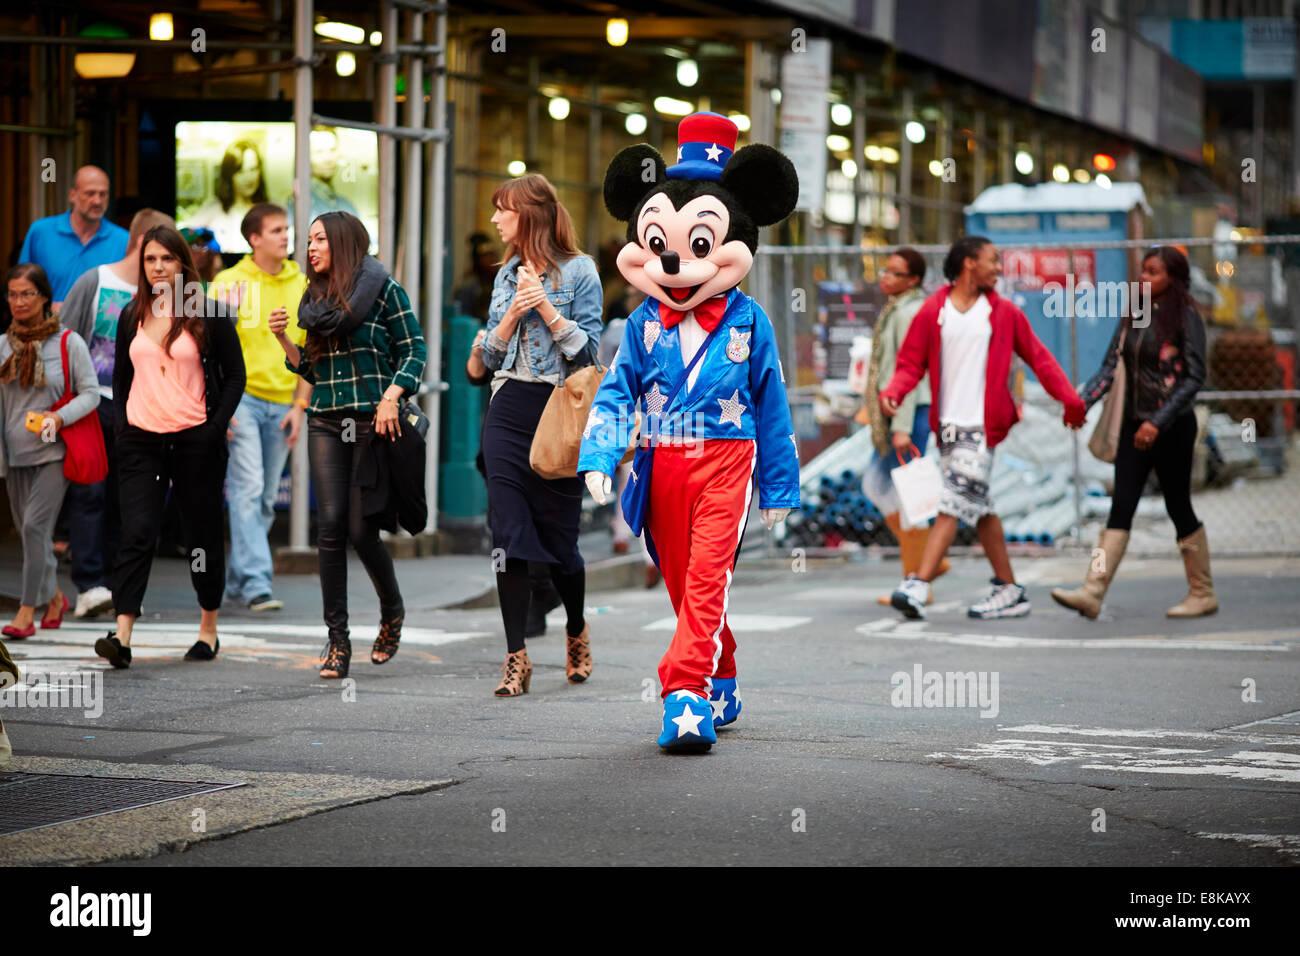 New York city NYC Times Square caricatures busk pour des conseils Photo Stock